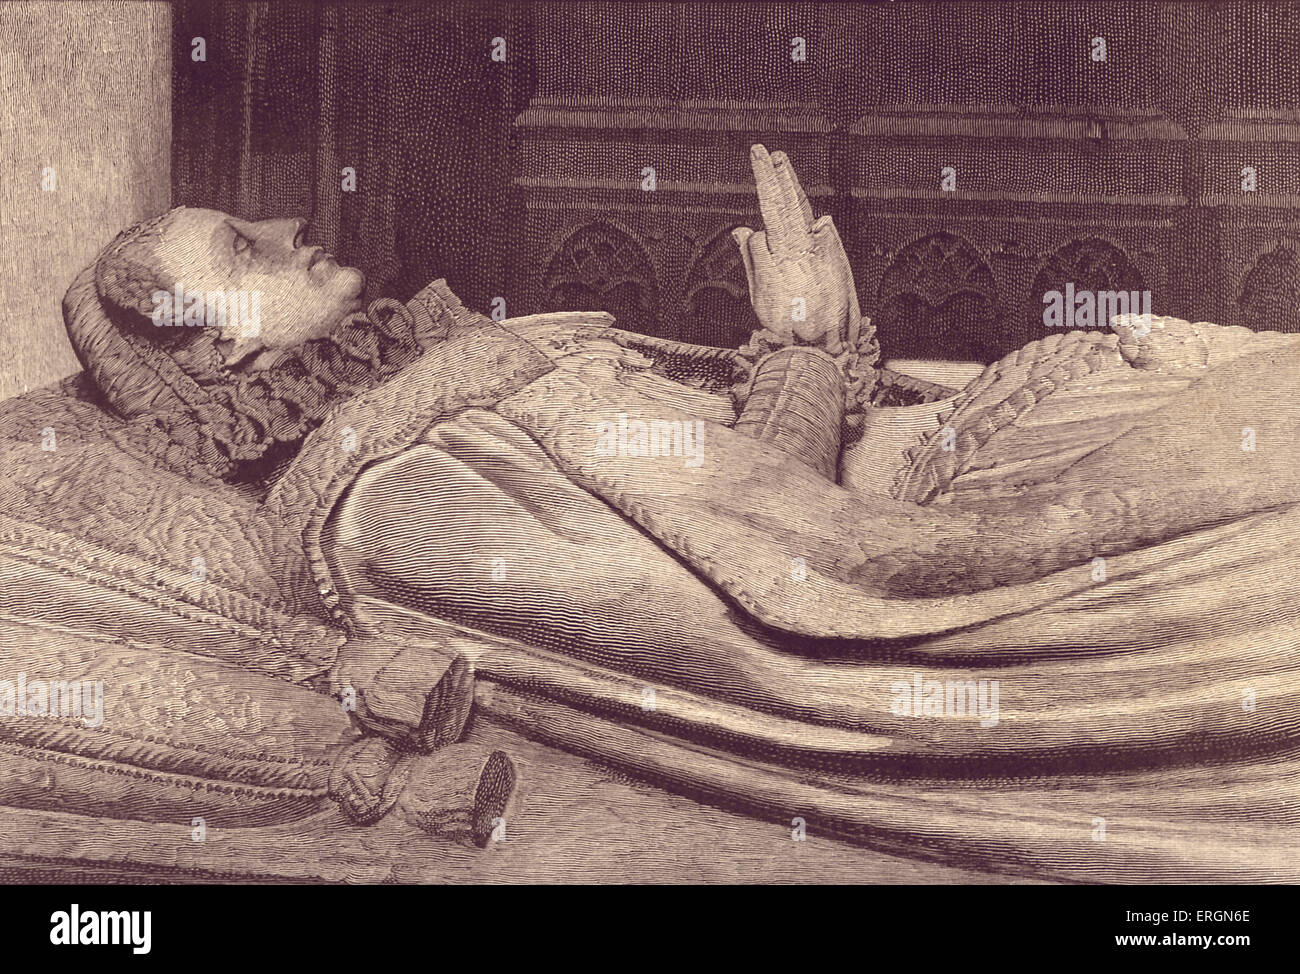 Effigy of Mary Queen of Scots (1542- 1587) on her tomb. Queen regnant of Scotland (1542 - 1567)  and queen consort - Stock Image